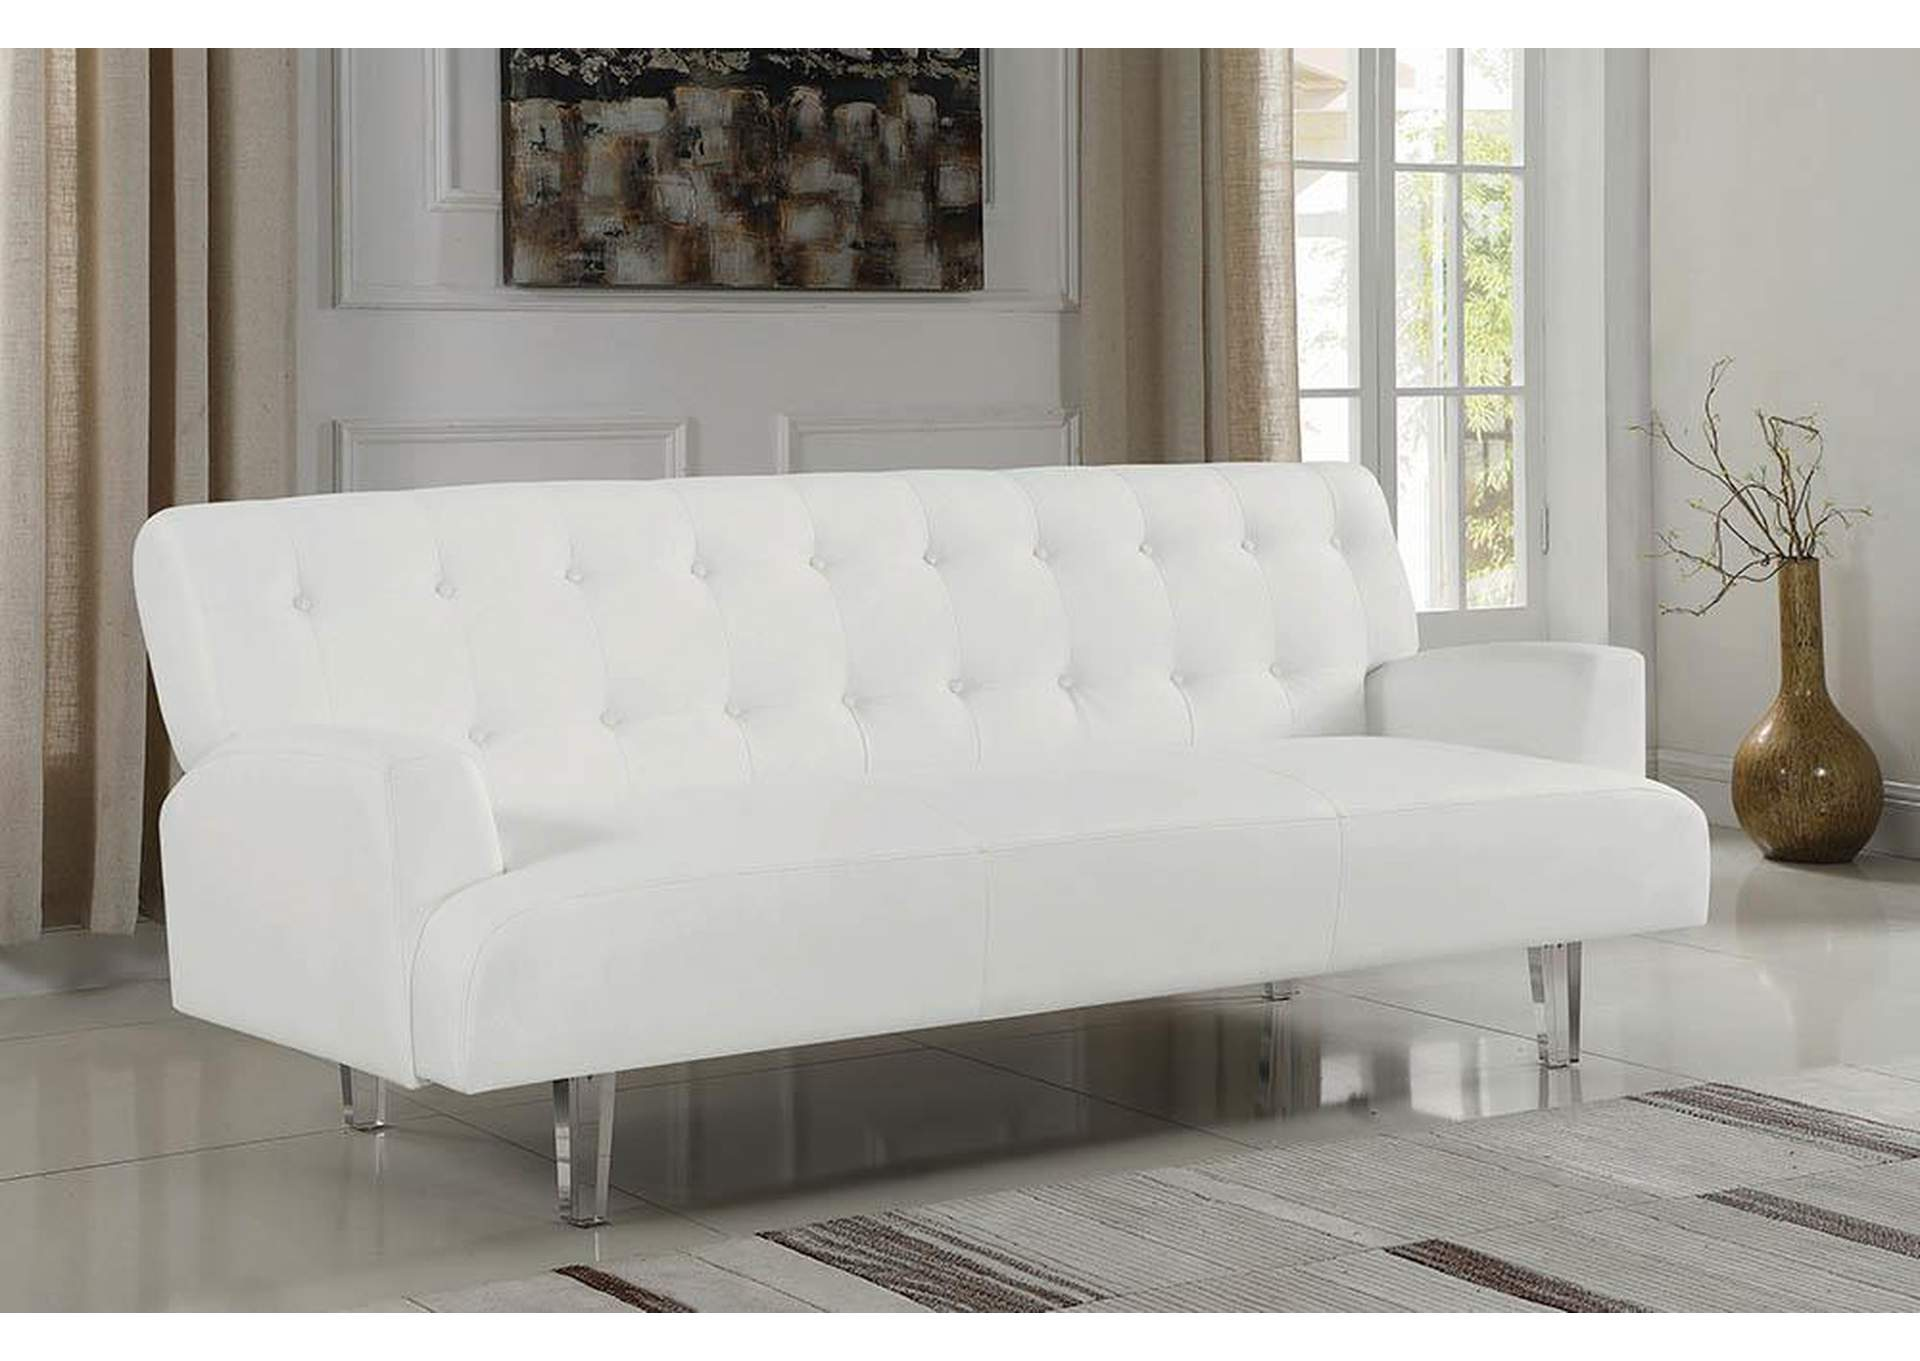 Exceptional White Faux Leather Sofa Bed,Coaster Furniture